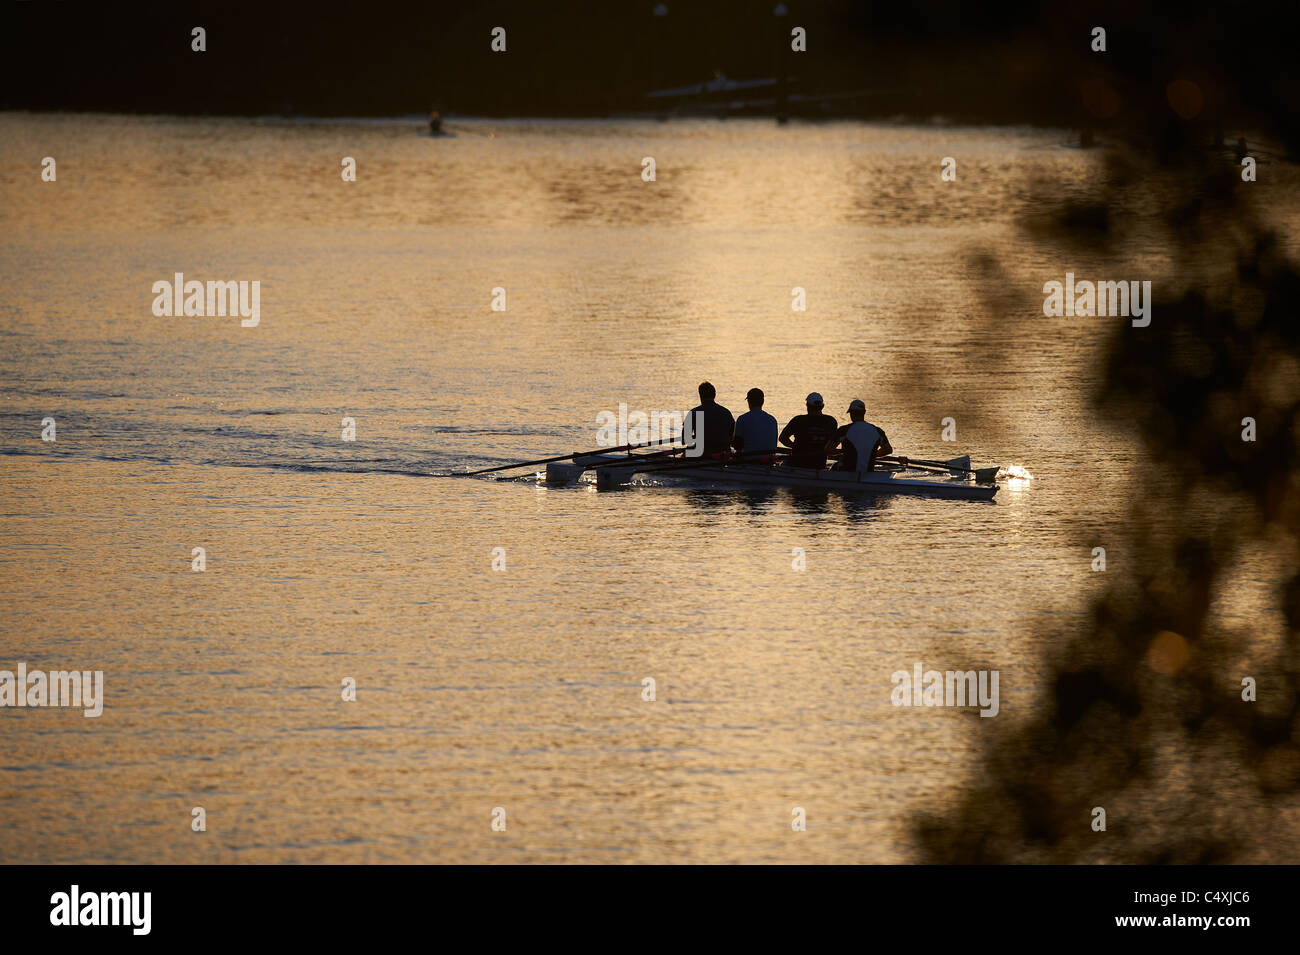 Rowing team on the Milton reach of the Brisbane river - Stock Image